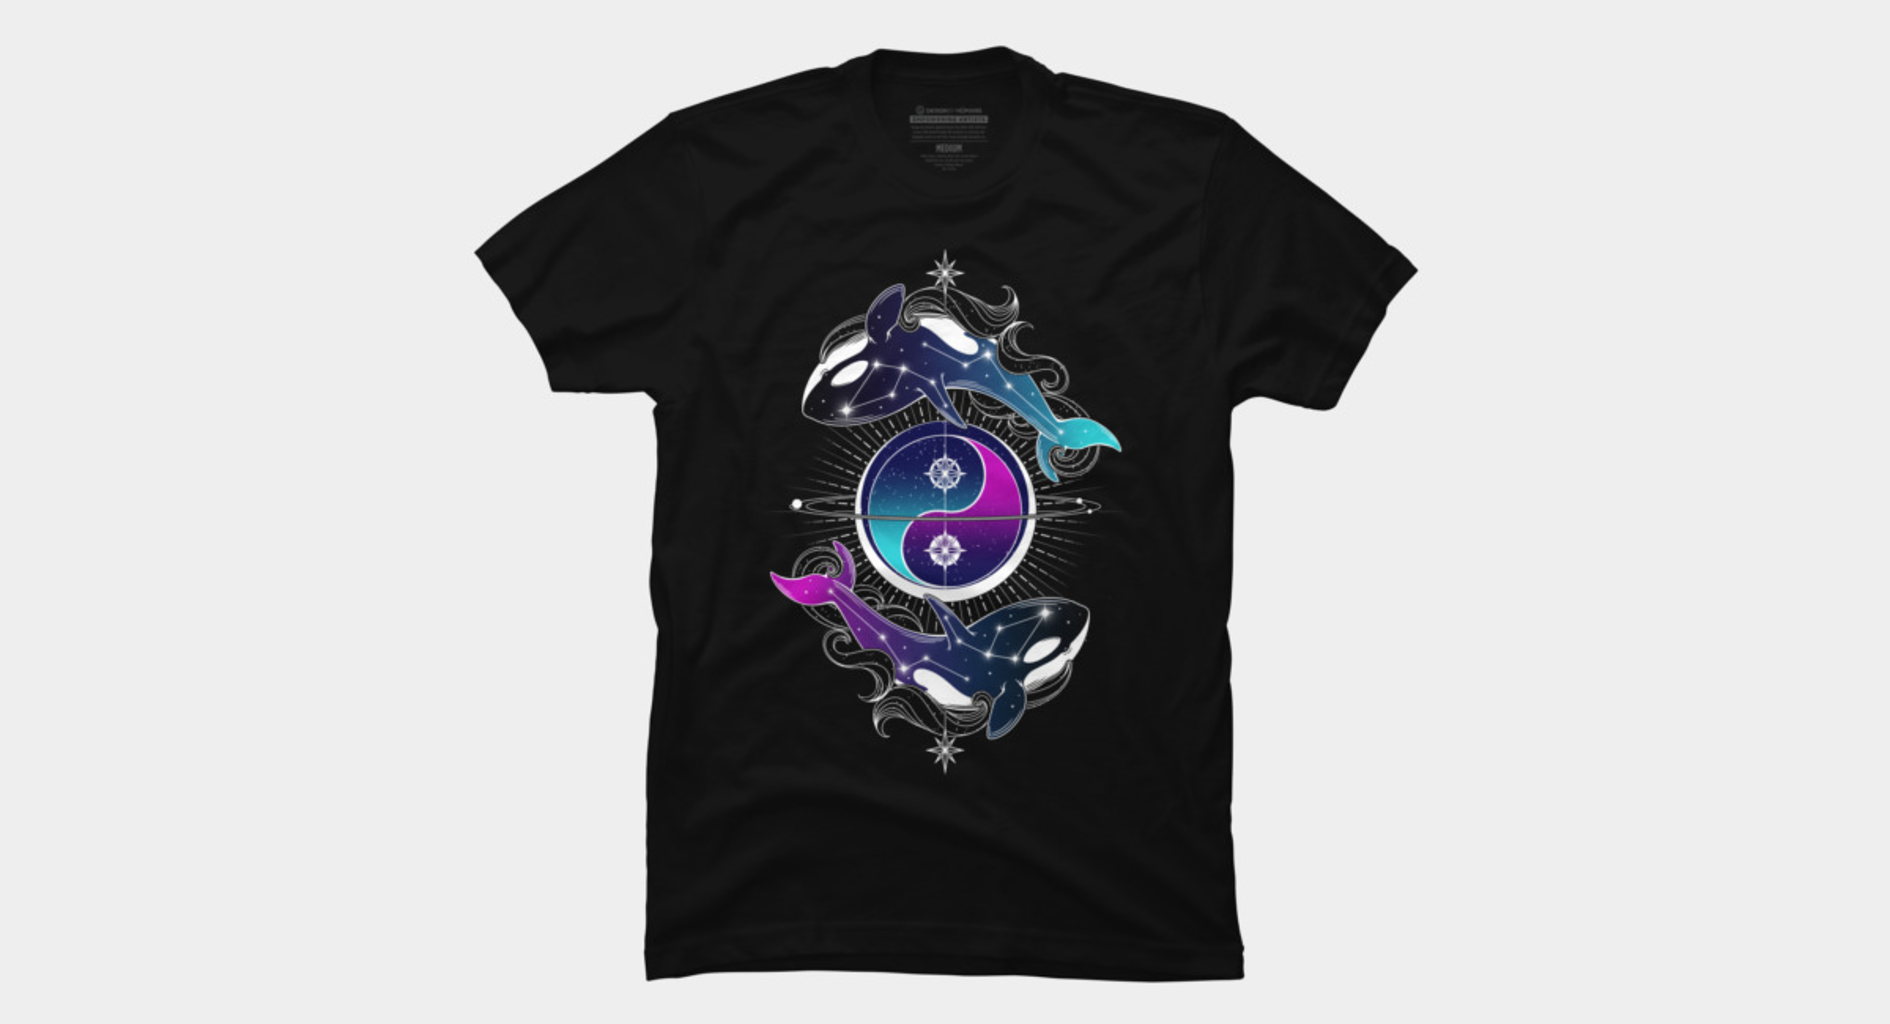 Design by Humans: Harmonic Sky